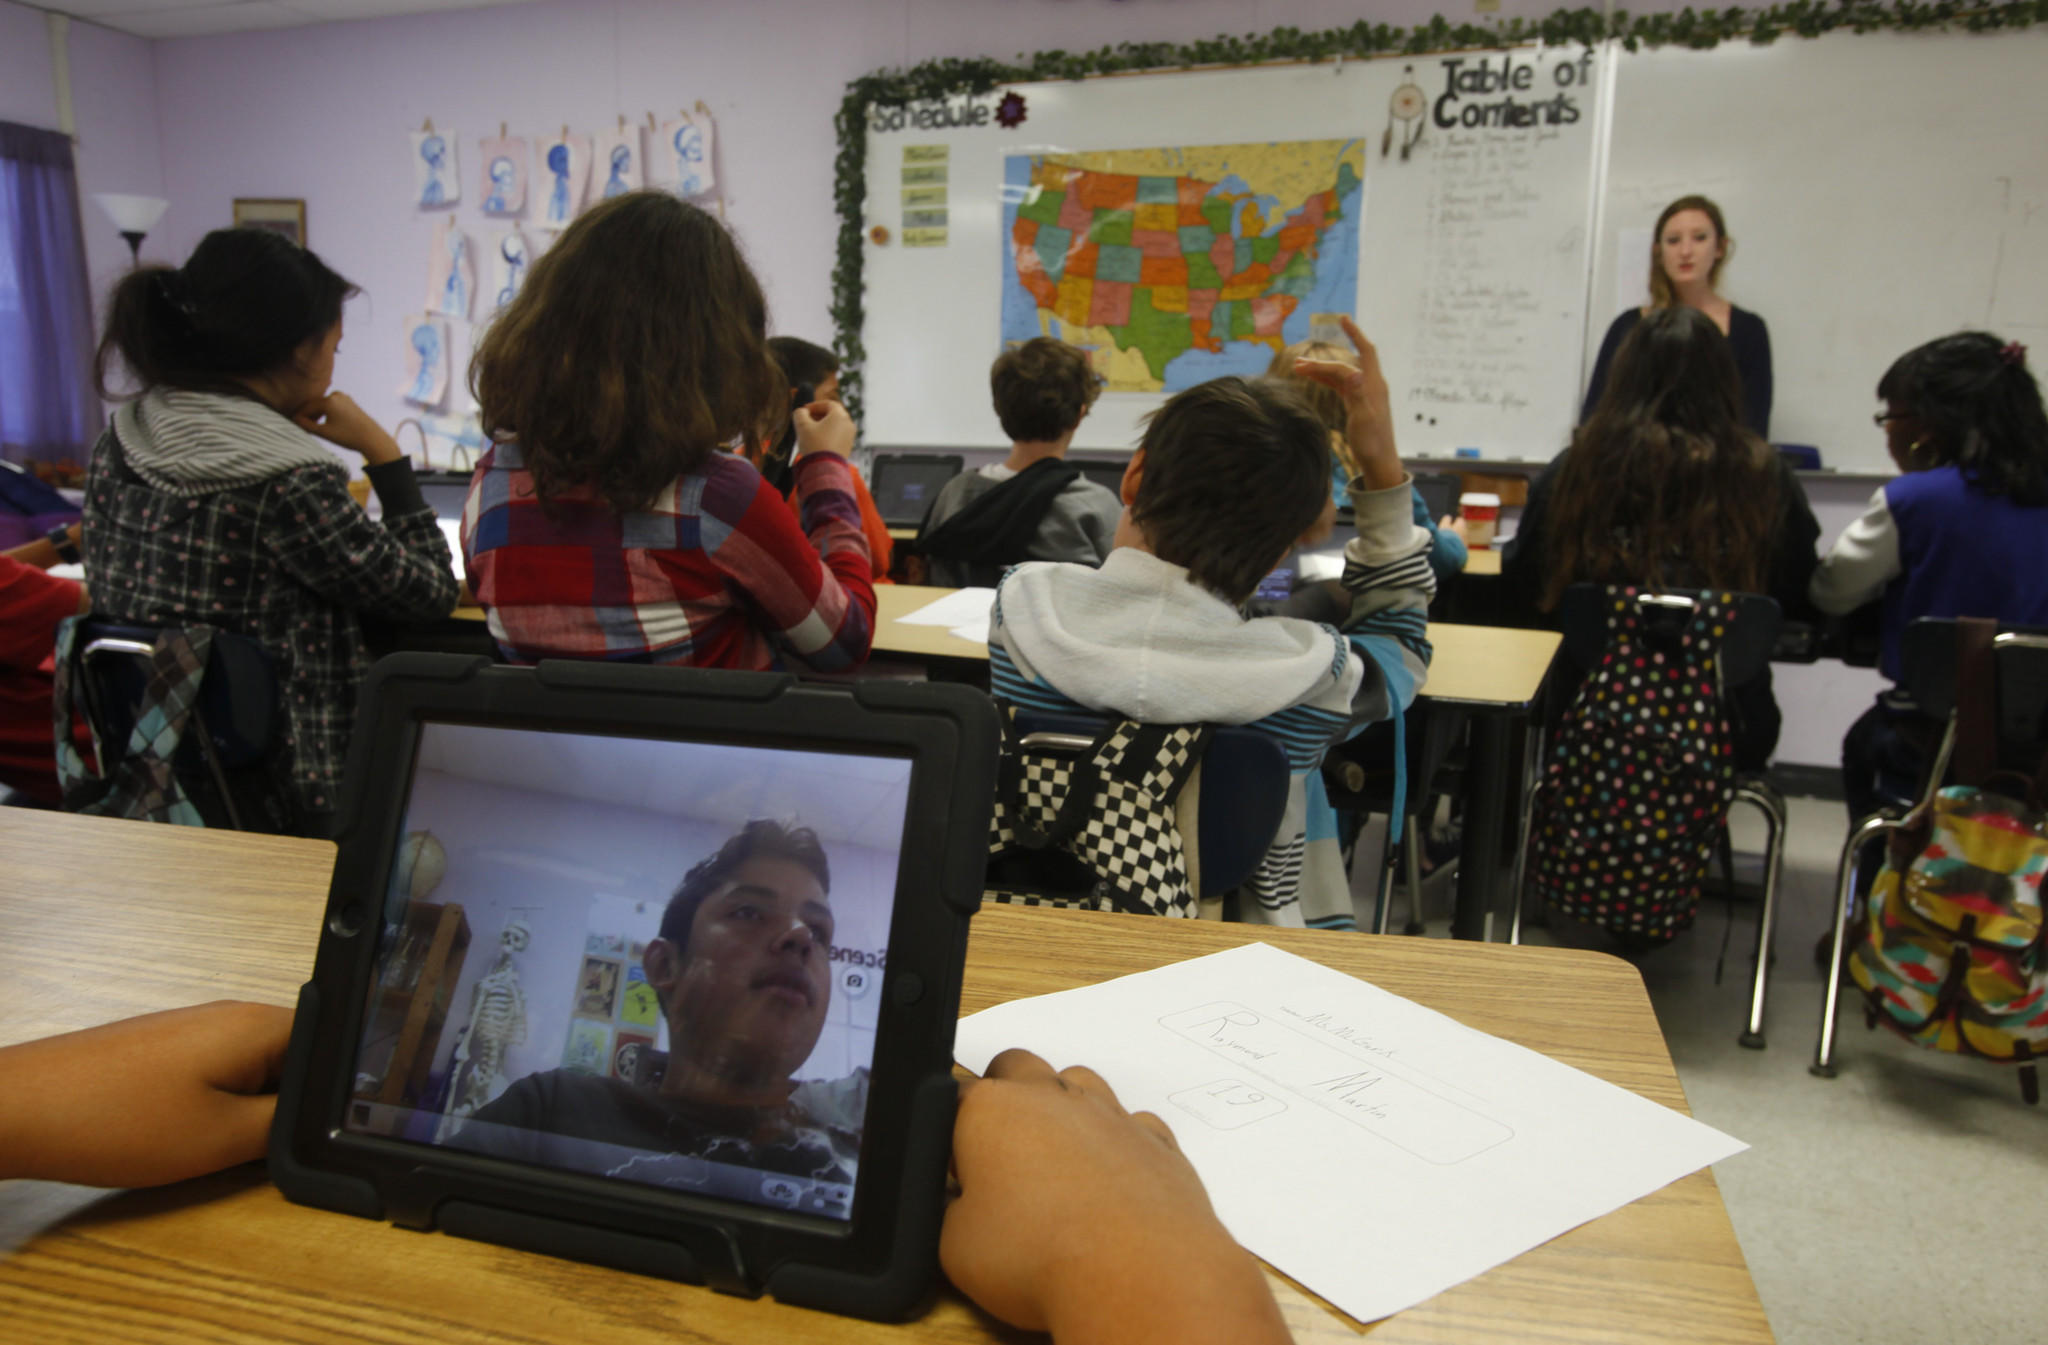 Stephanie McGurk's eighth-grade class at Ocean Charter School turn on their L.A. Unified-distributed iPads this week for the first time.